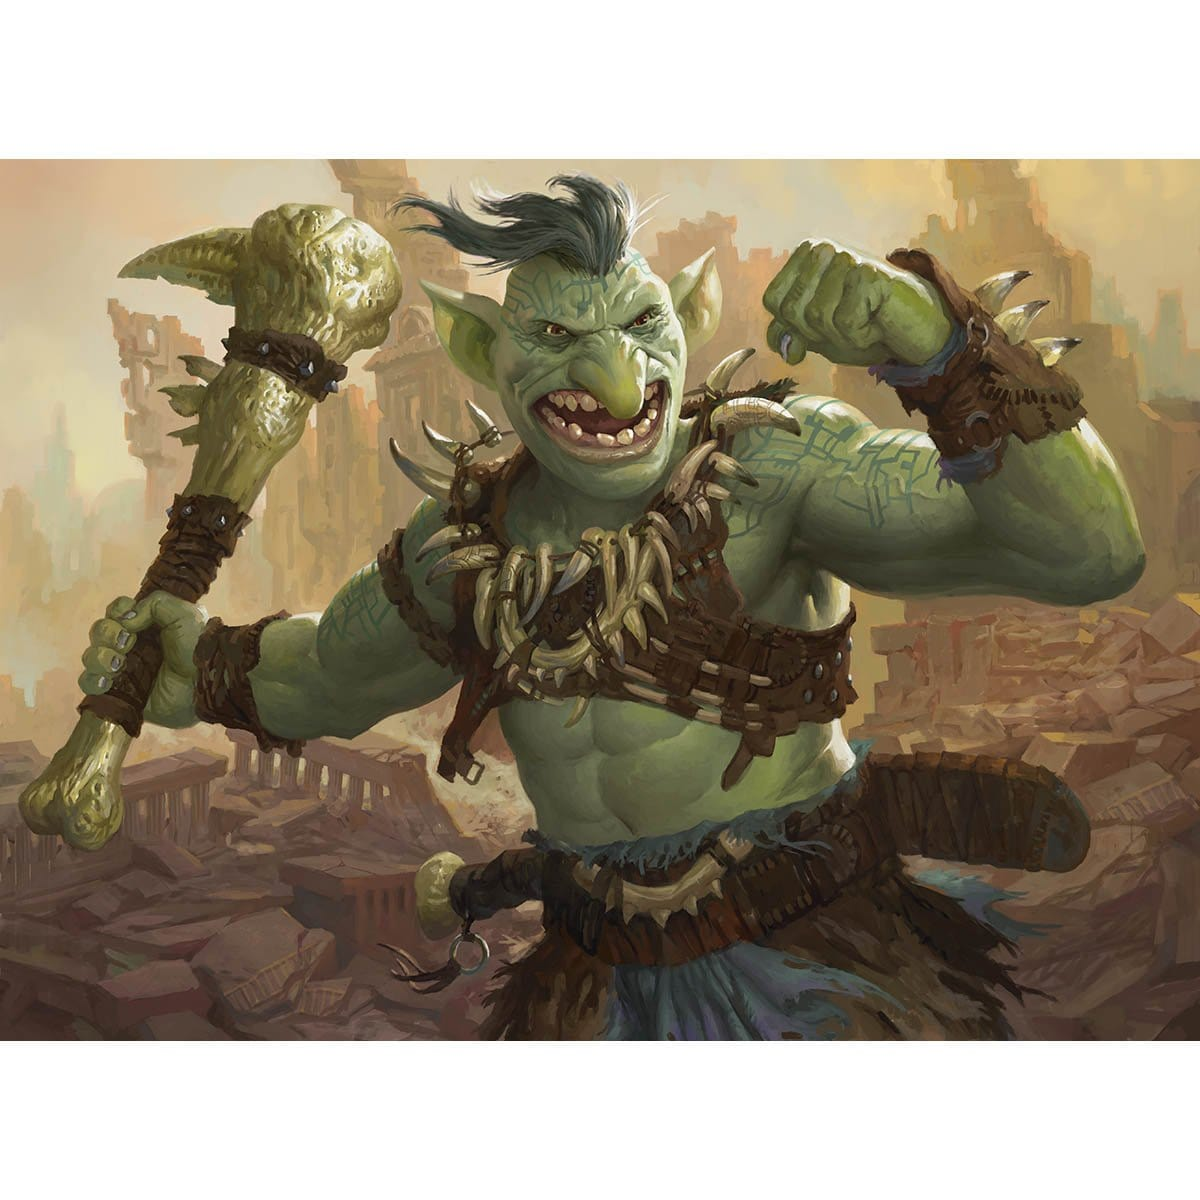 Goblin Bruiser Print - Print - Original Magic Art - Accessories for Magic the Gathering and other card games